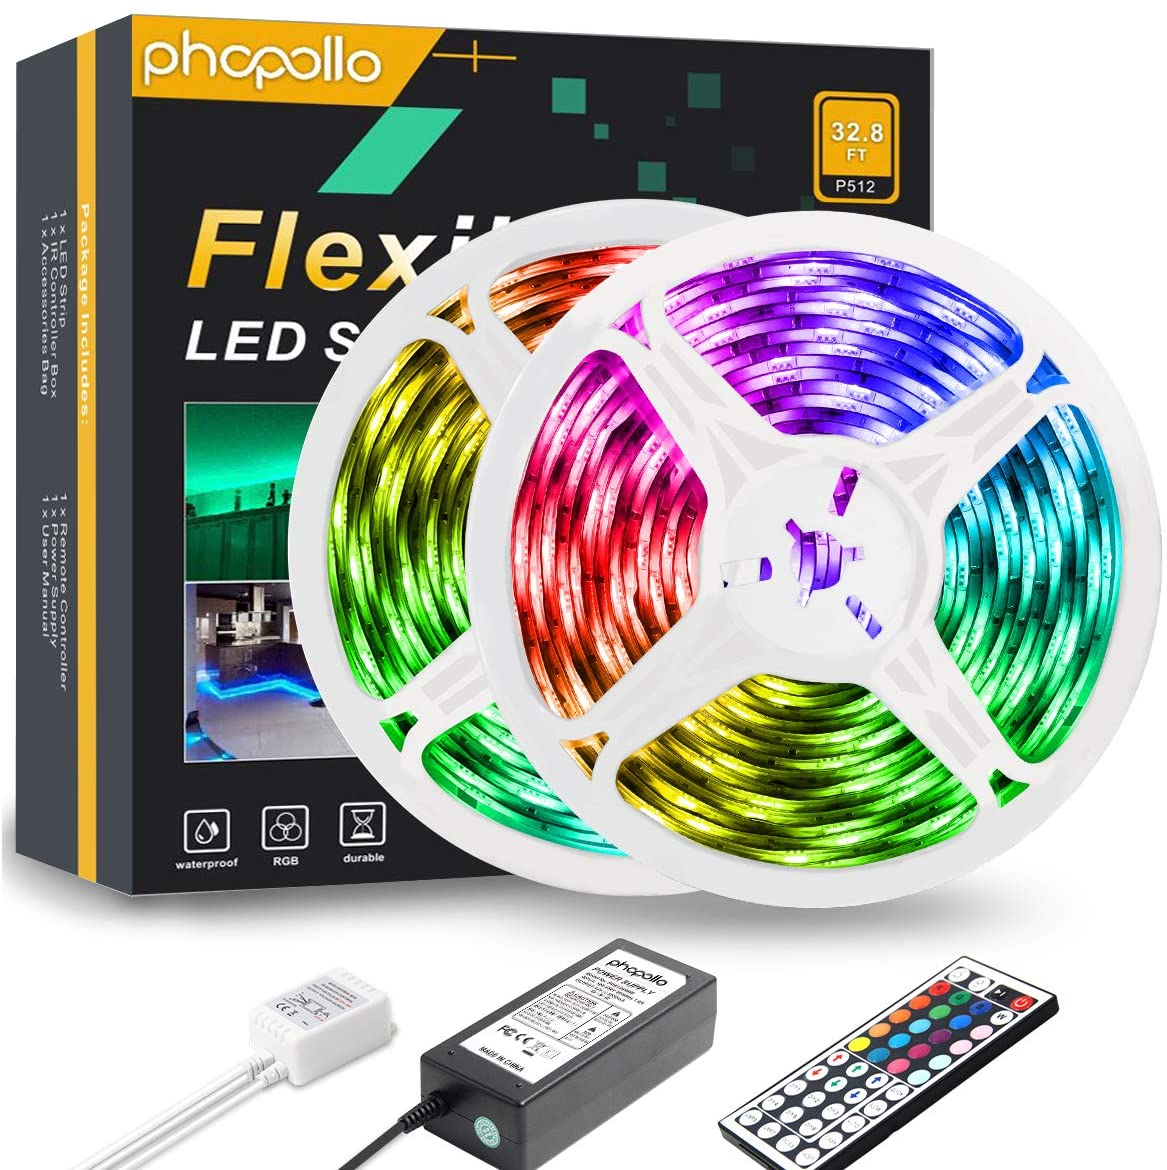 PHOPOLLO LED Strip Lights, 32.8FT Waterproof 5050 300LEDs RGB Flexible LED Lights for Bedroom with 44-Key IR Remote Controller and 12V Power Supply, Ideal for House and Holiday Decoration